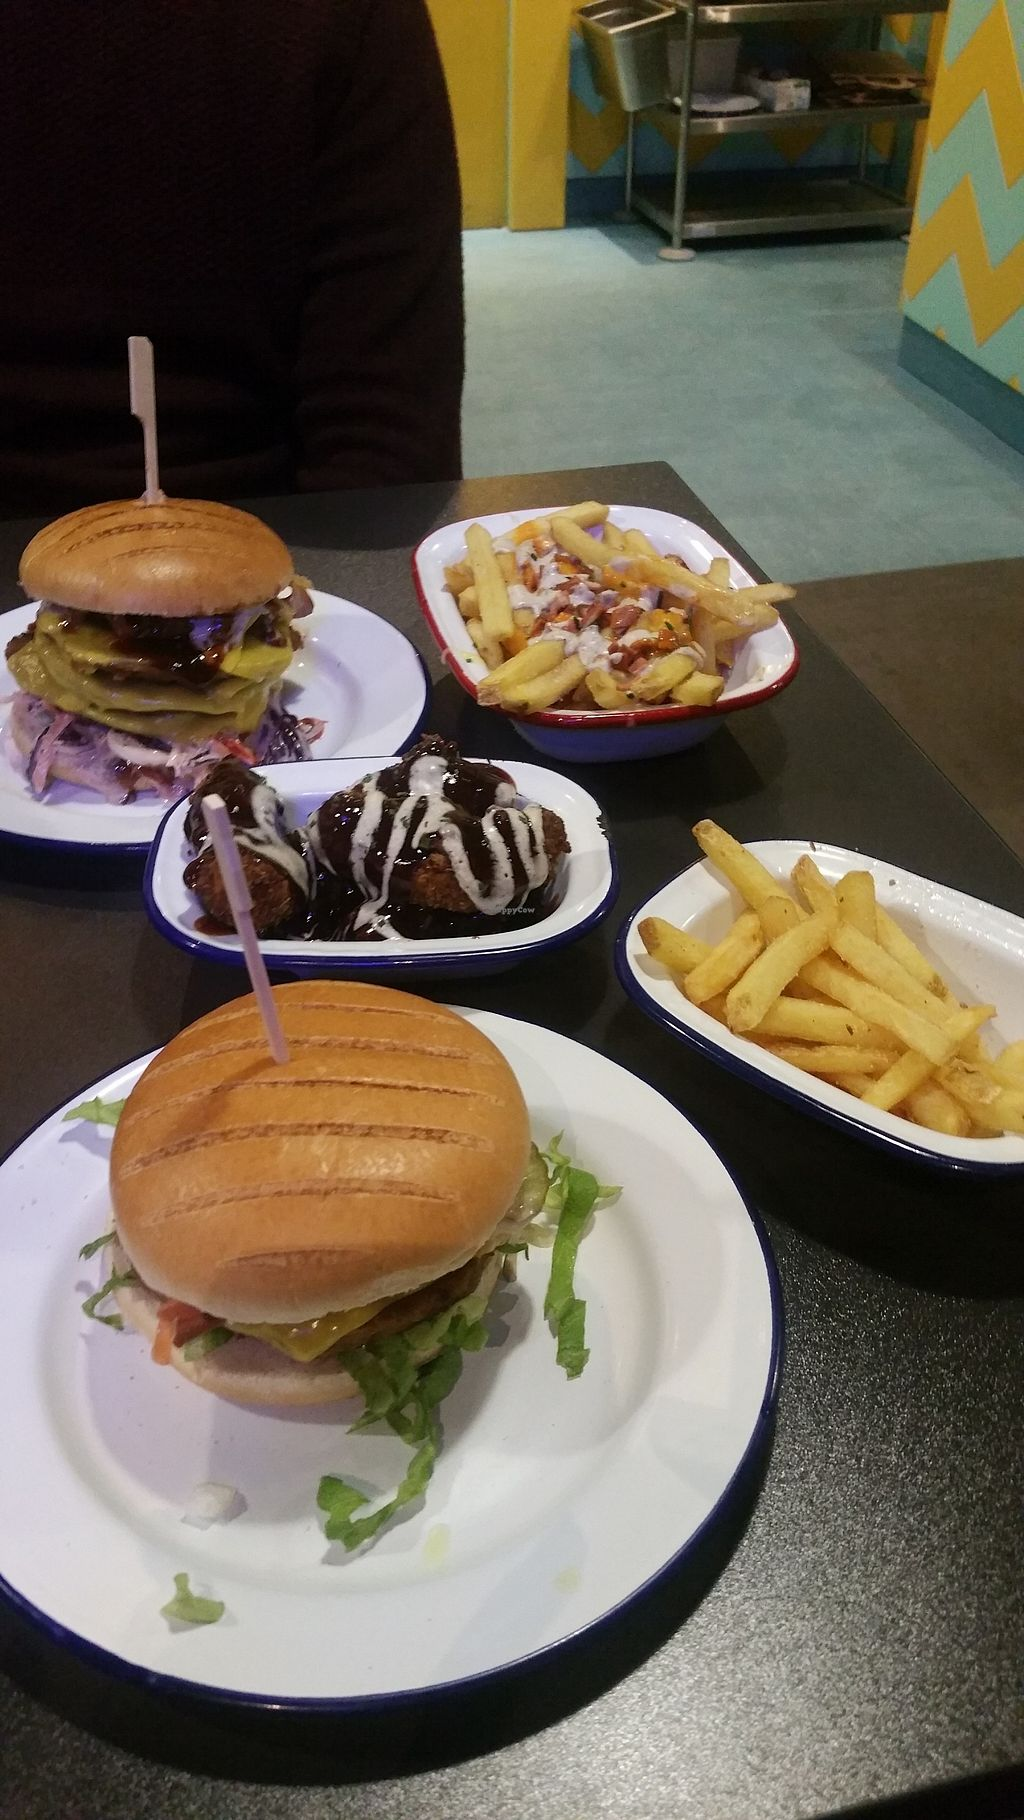 """Photo of V Rev Vegan Diner  by <a href=""""/members/profile/Nicola.W"""">Nicola.W</a> <br/>Burgers, fries and bbq chicken tenders <br/> April 16, 2018  - <a href='/contact/abuse/image/32339/386753'>Report</a>"""